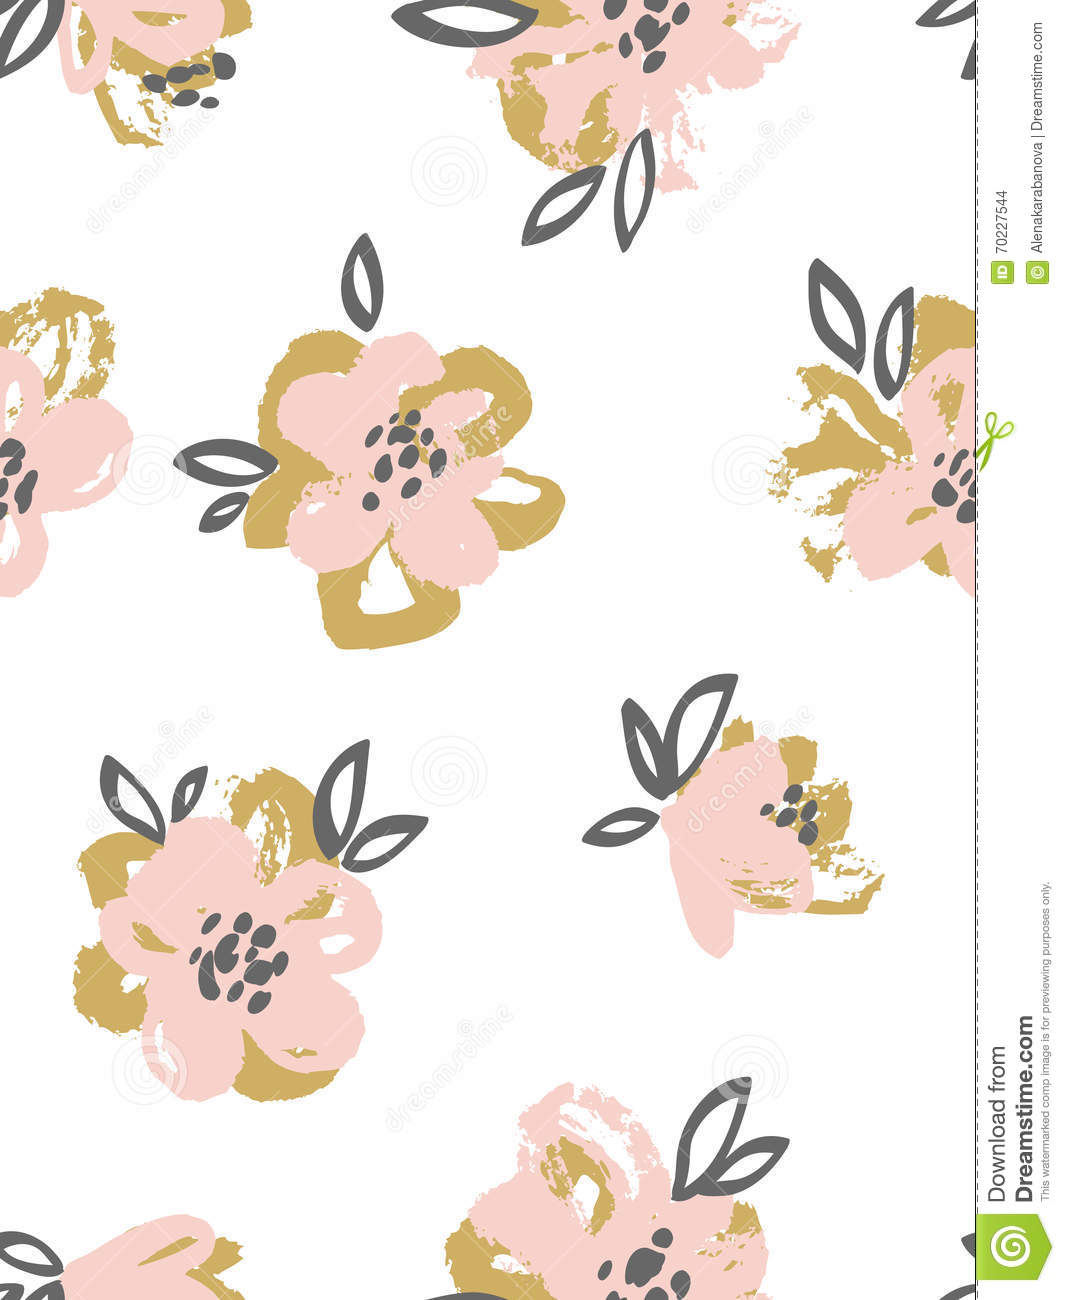 Seamless pattern with pink and gold flowers floral background download comp mightylinksfo